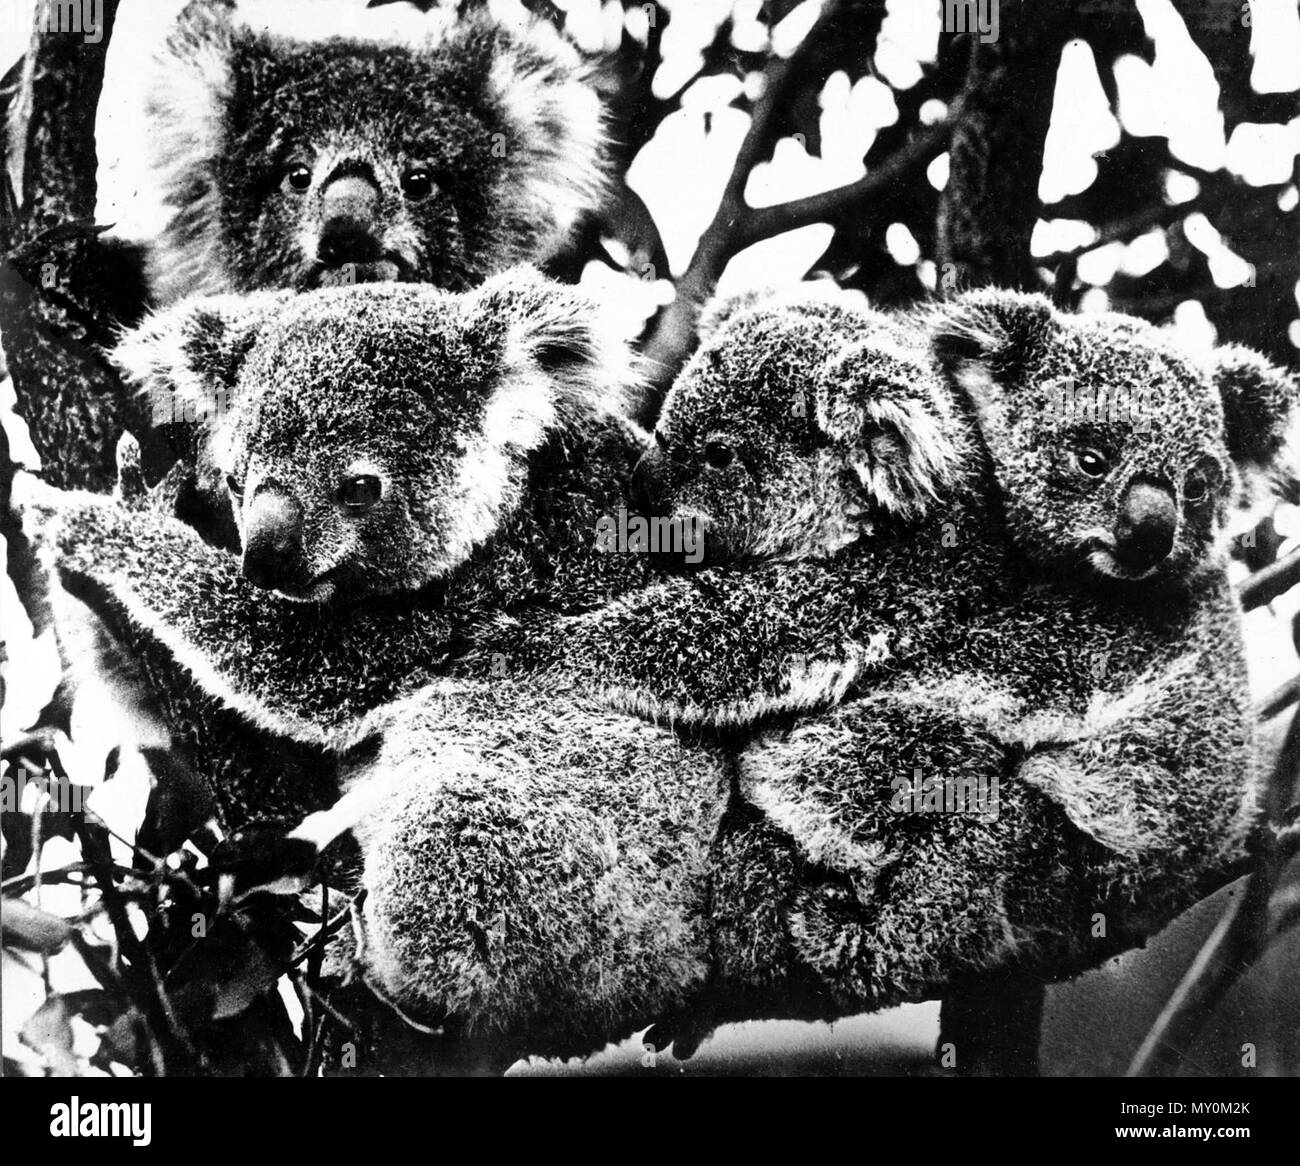 Koalas in a gum tree c 1931 the original photograph caption refers to the